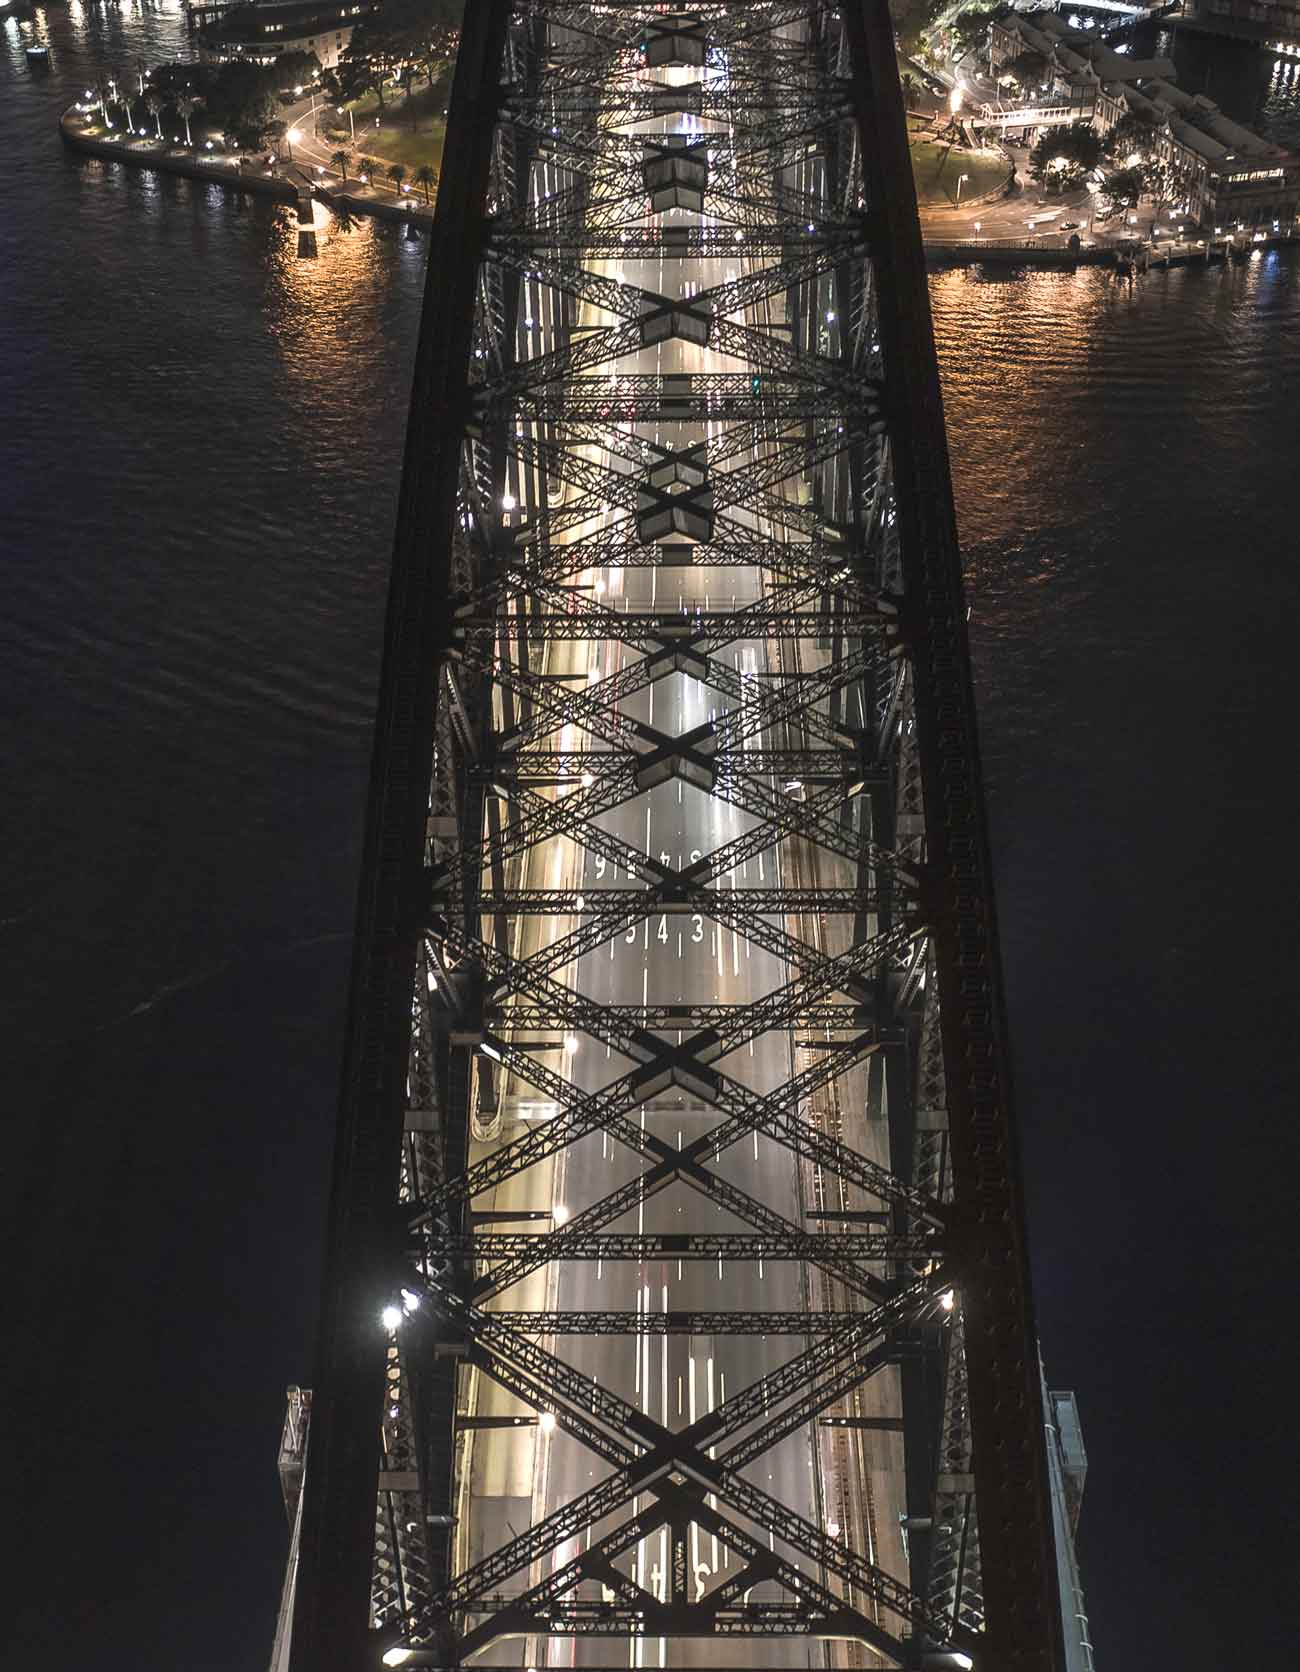 Sydney Harbour bridge drone photo